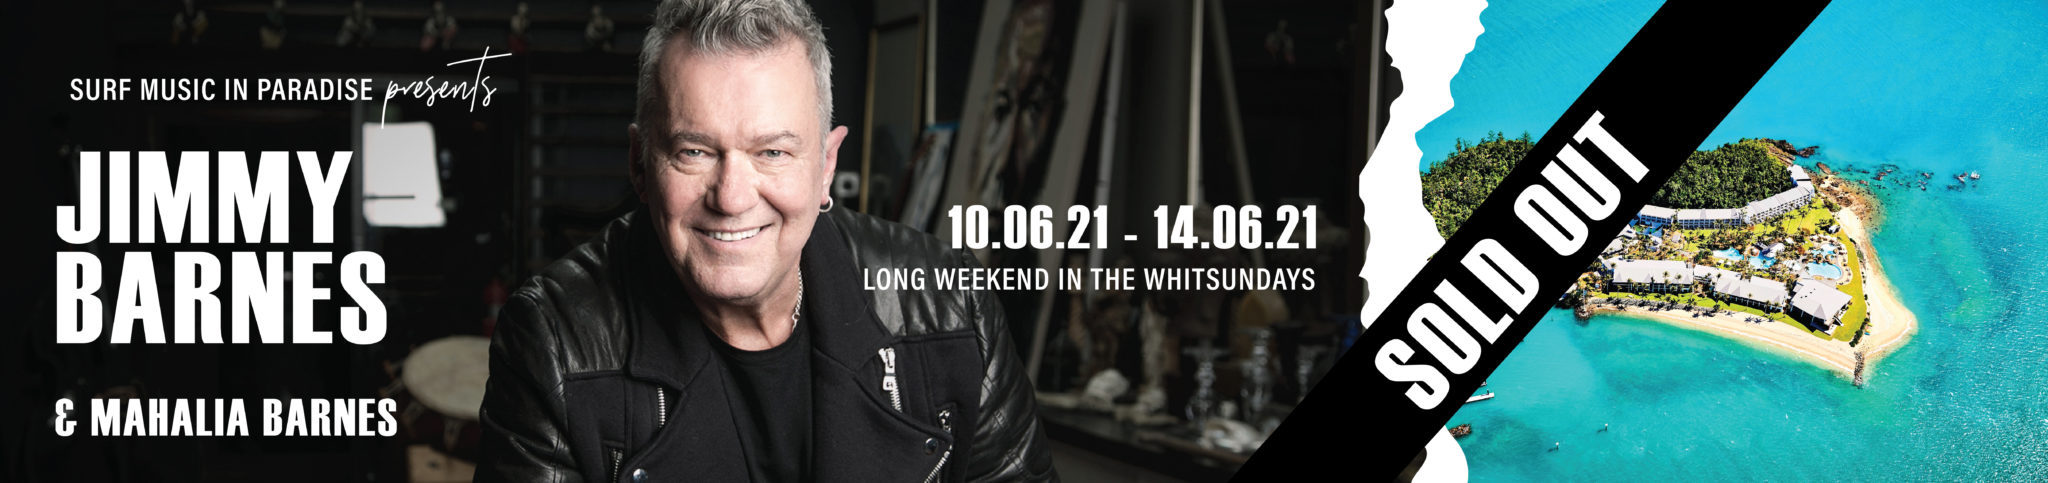 Jimmy Barnes - last release packages available